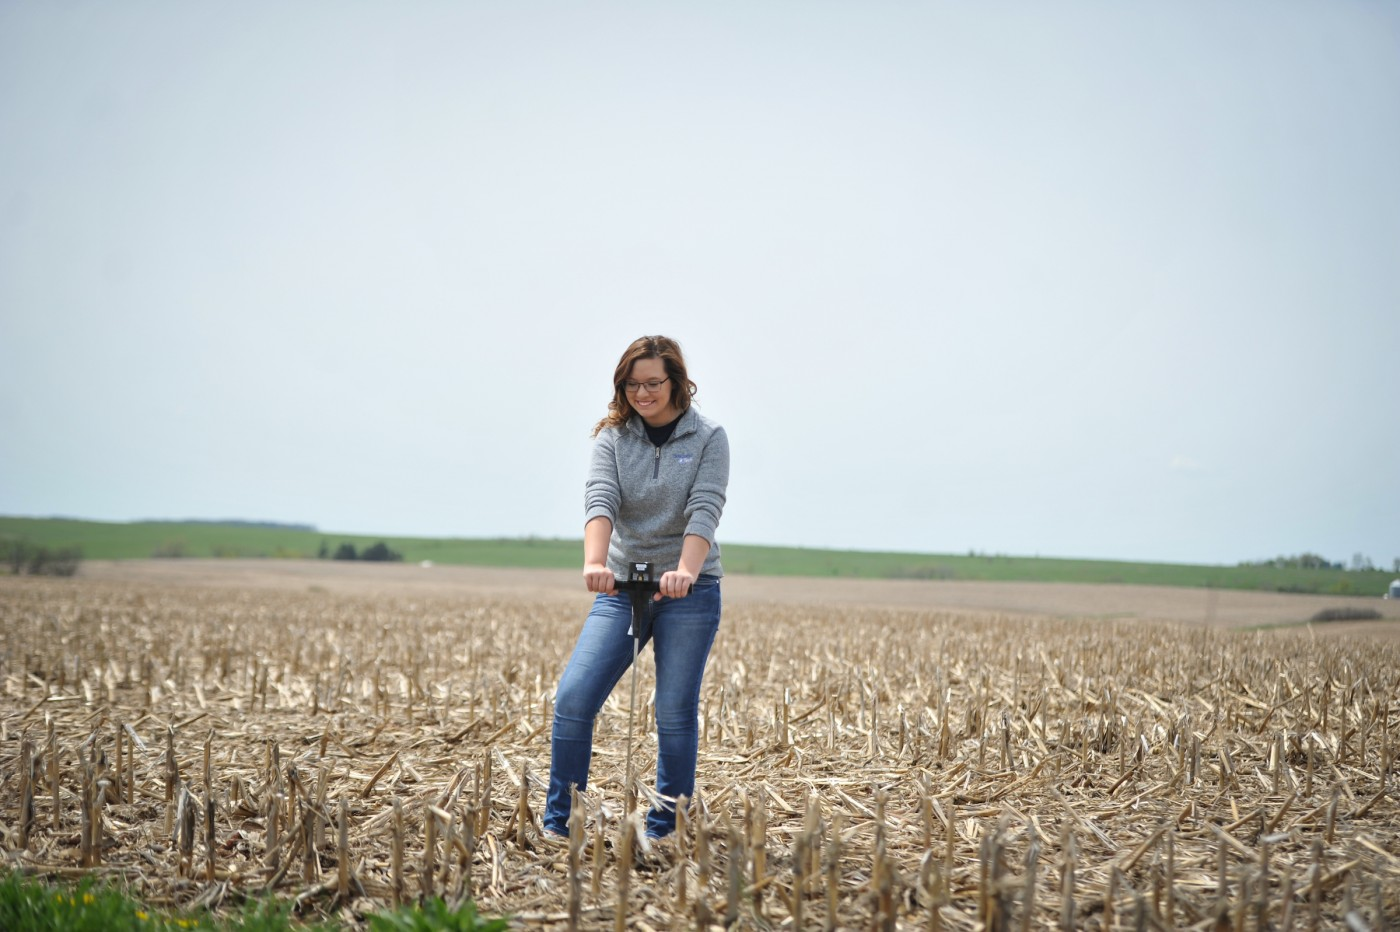 SWTC Ag student in dried corn field